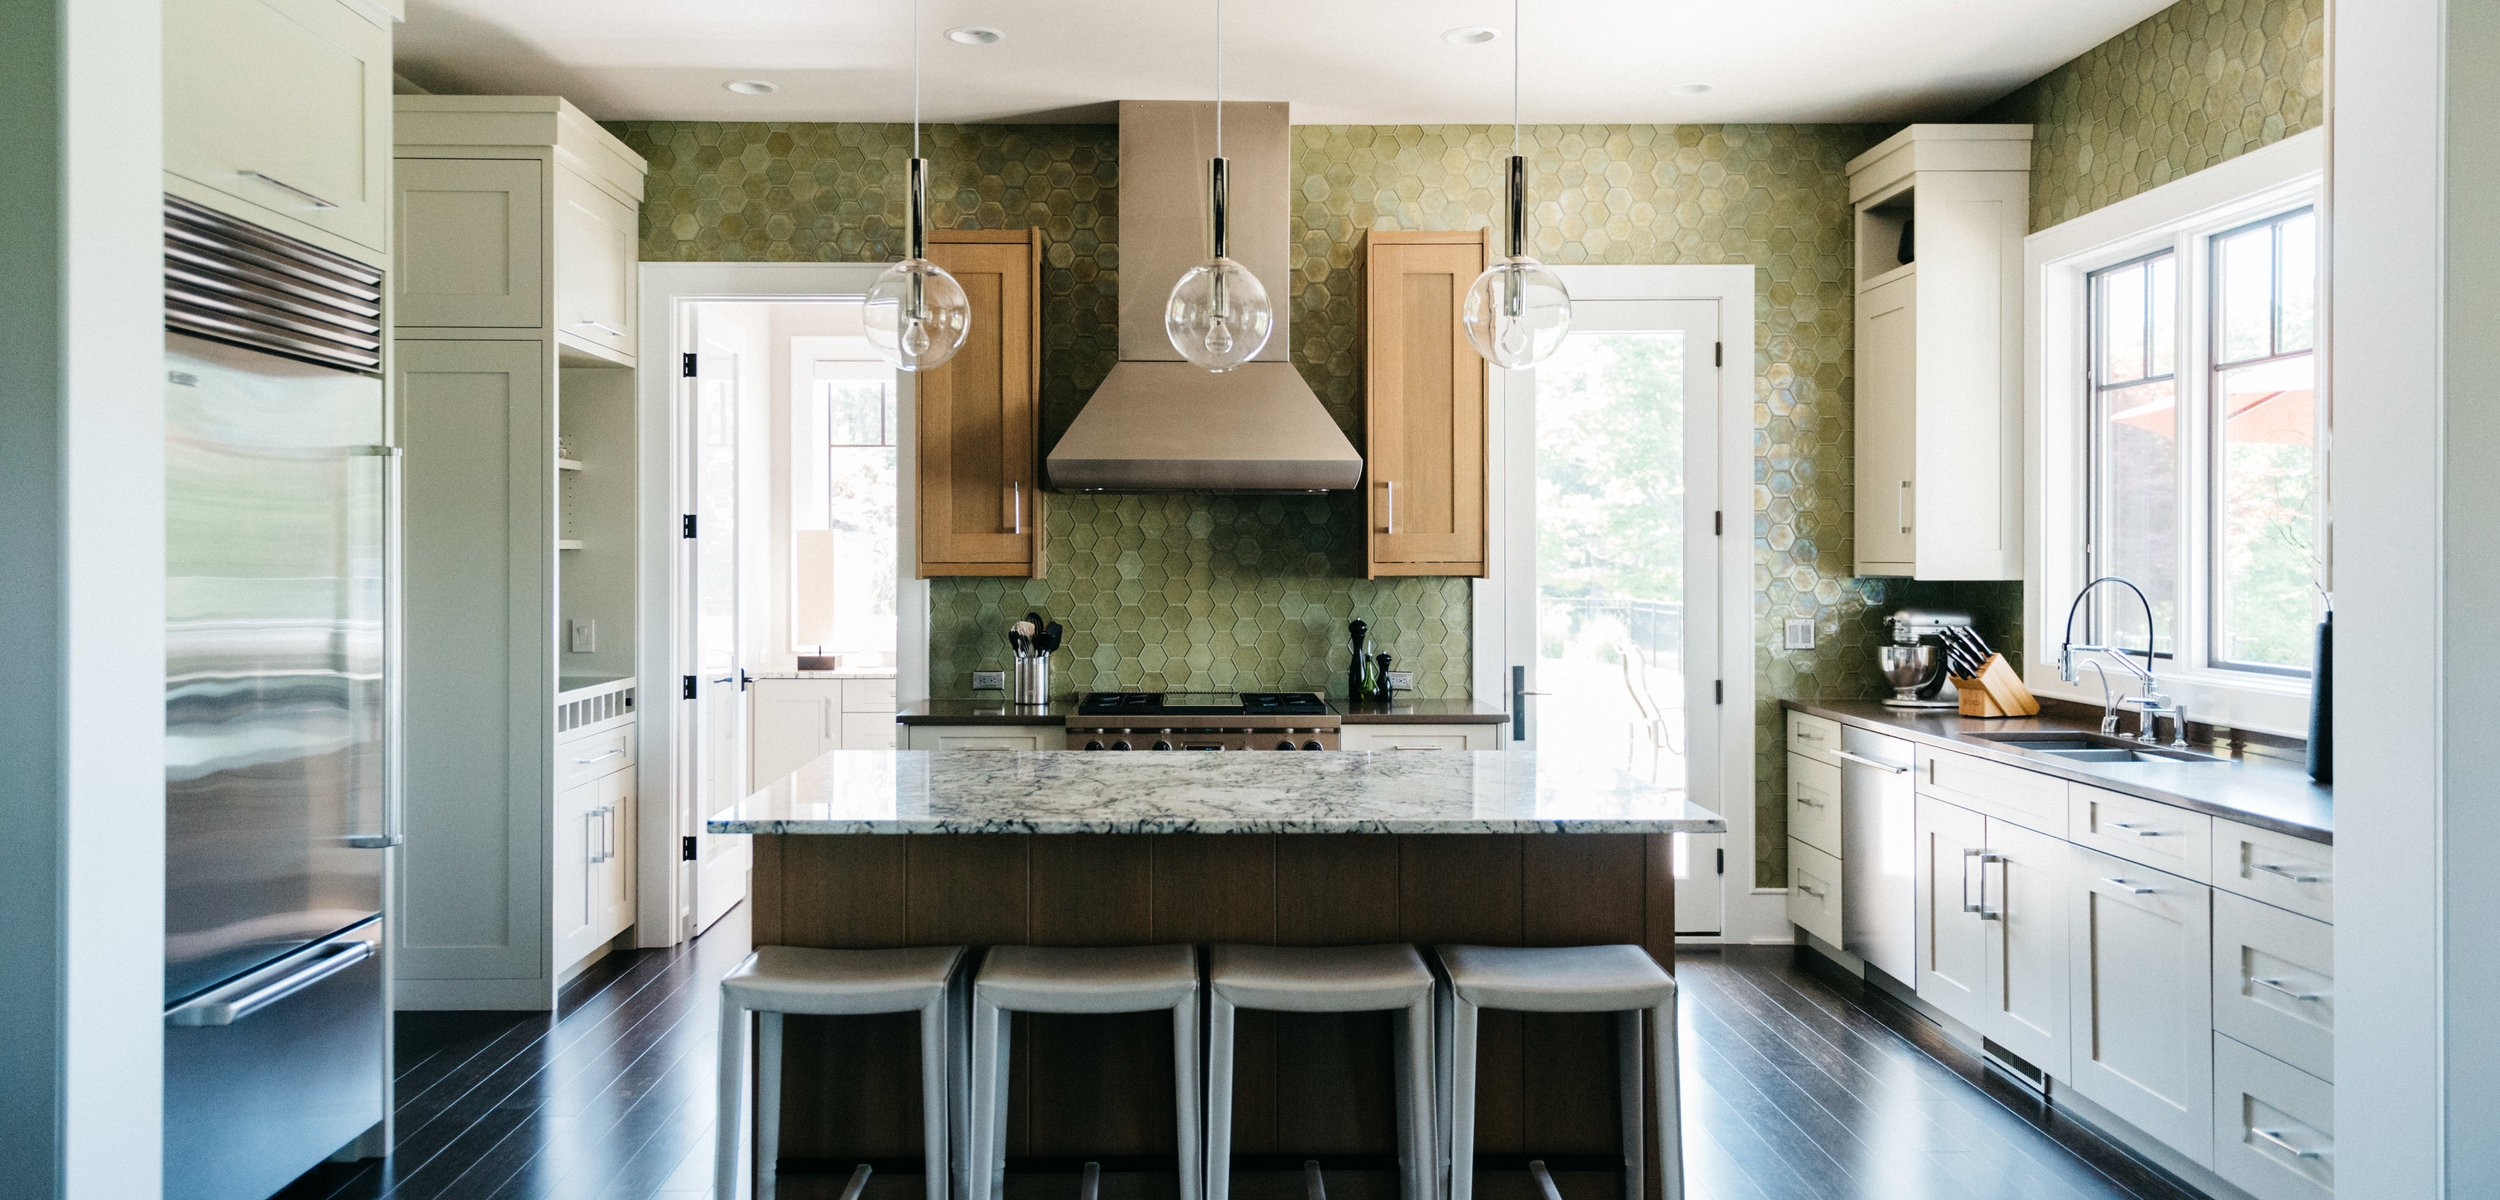 Modern Craftsman Home - A place for everyone and everything.